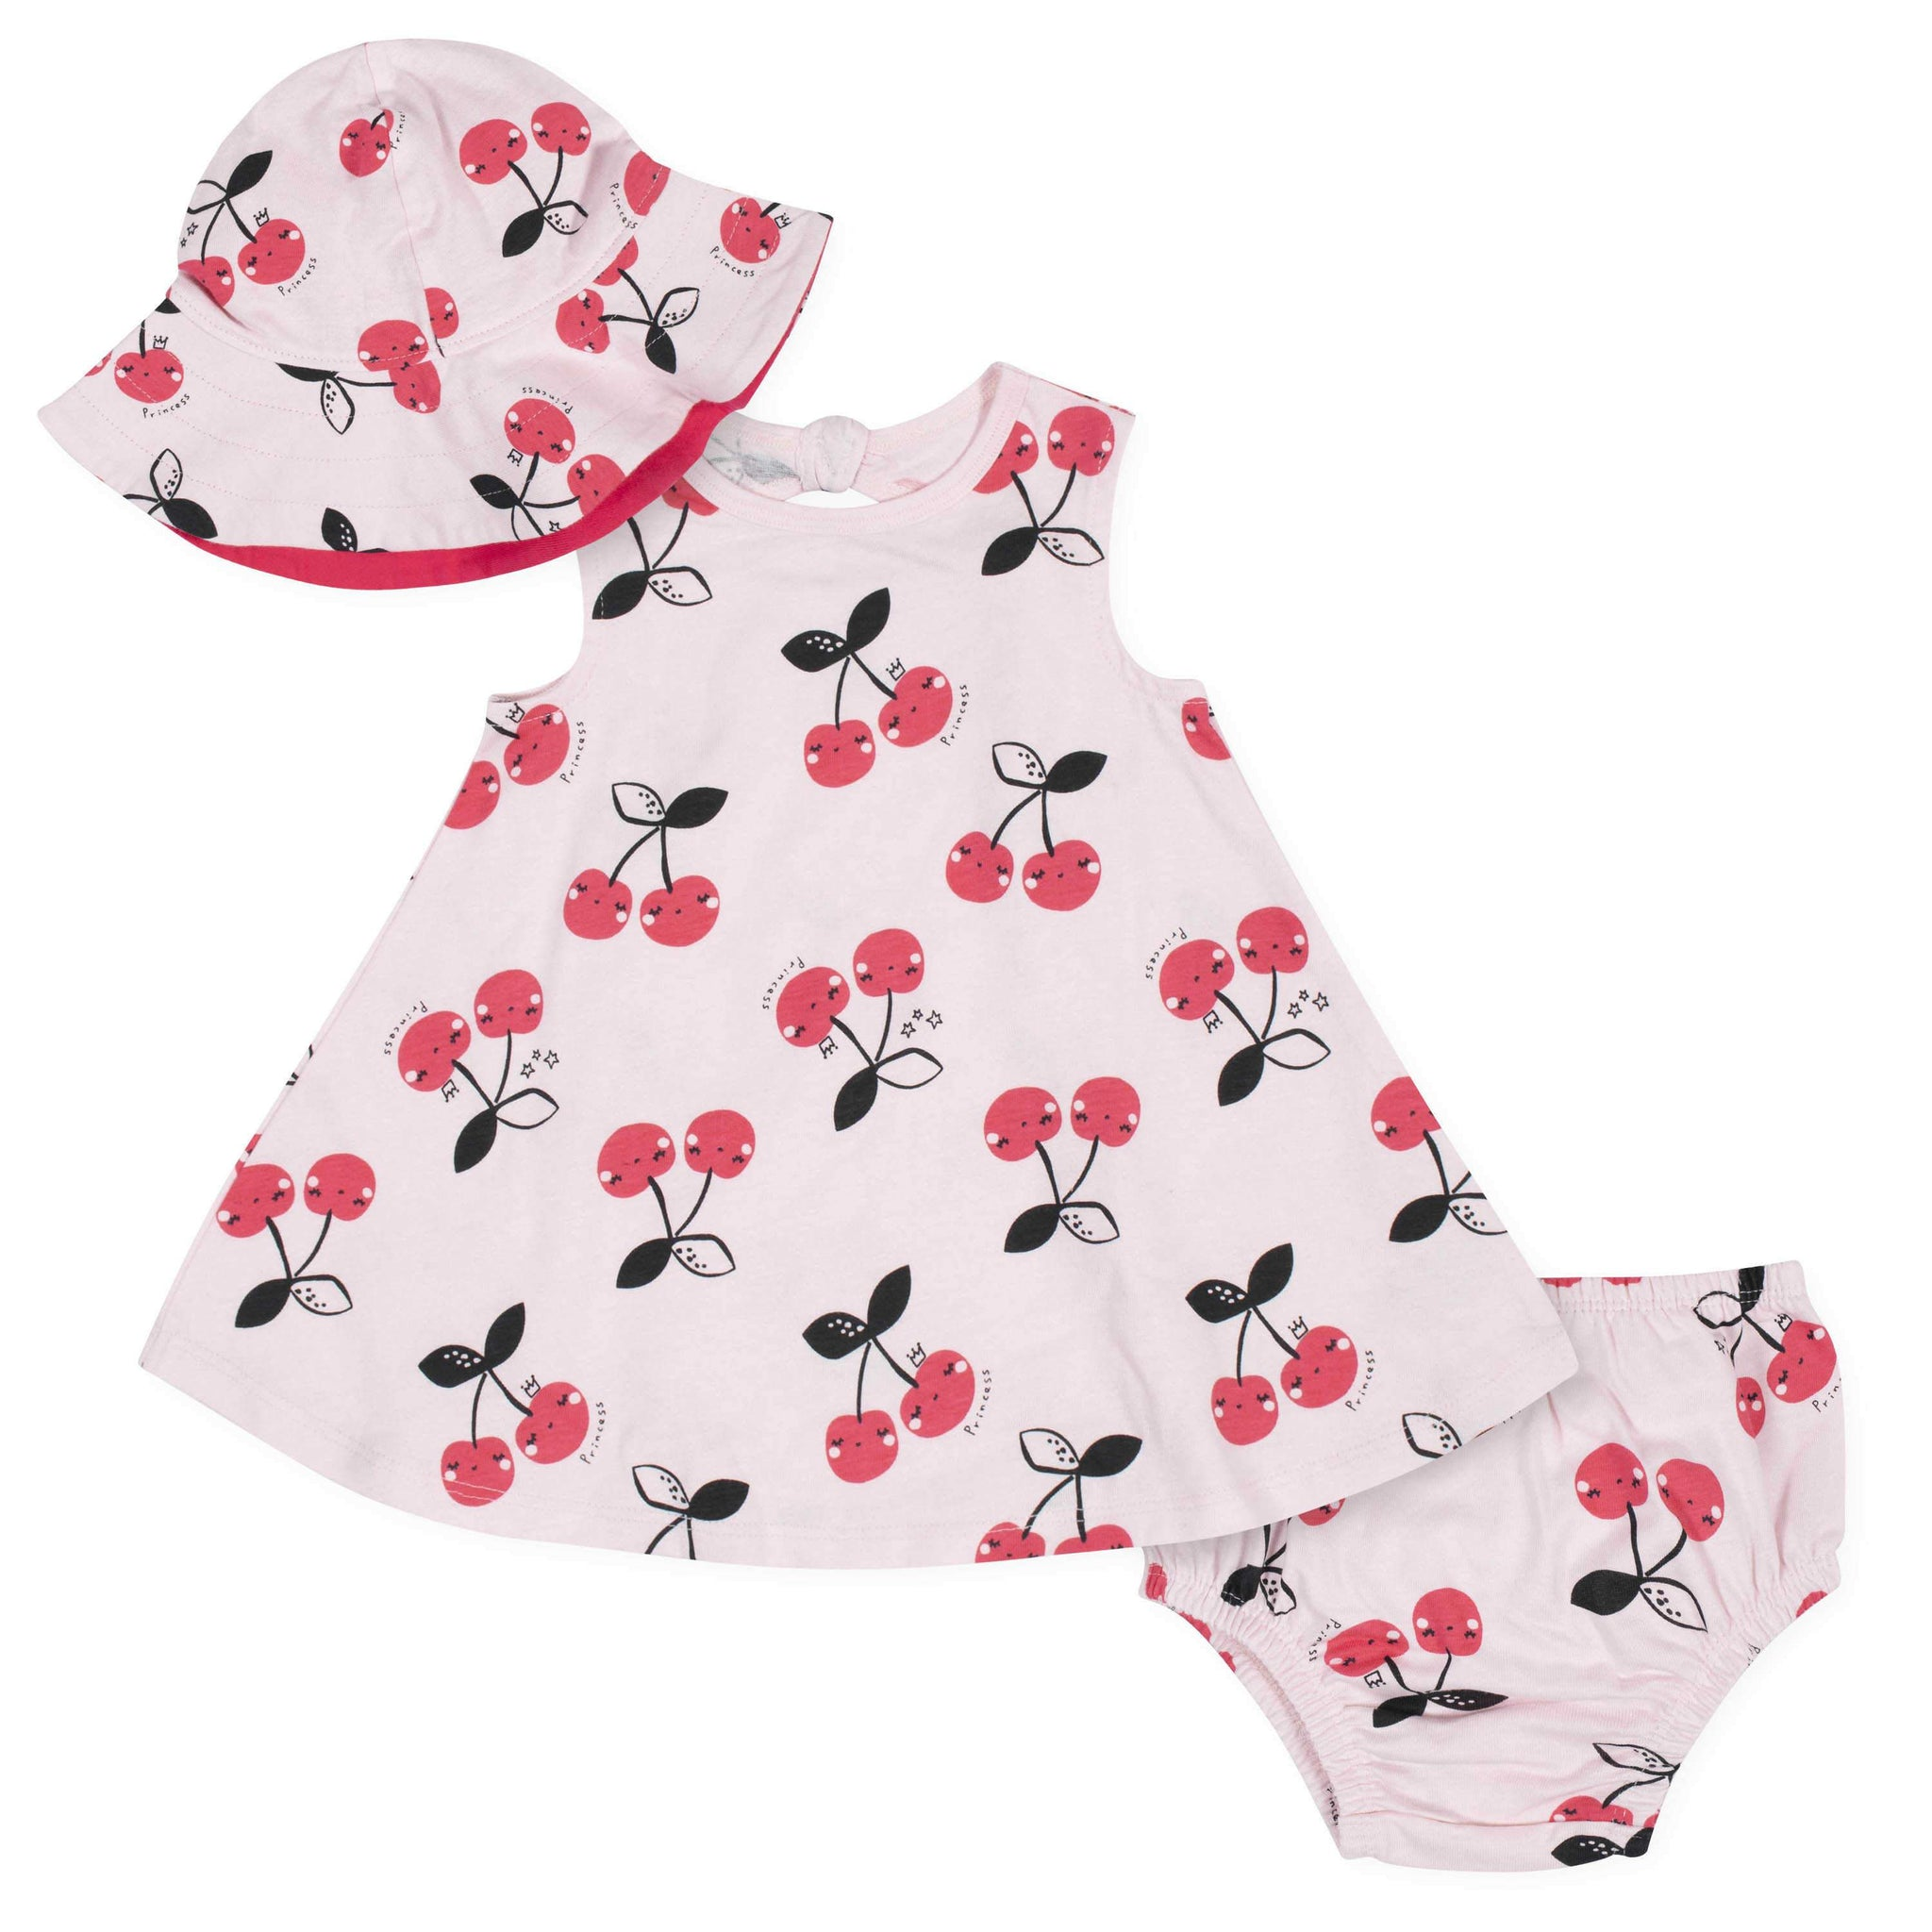 3-Piece Toddler Girls' Cherry Dress, Diaper Cover, and Hat Set